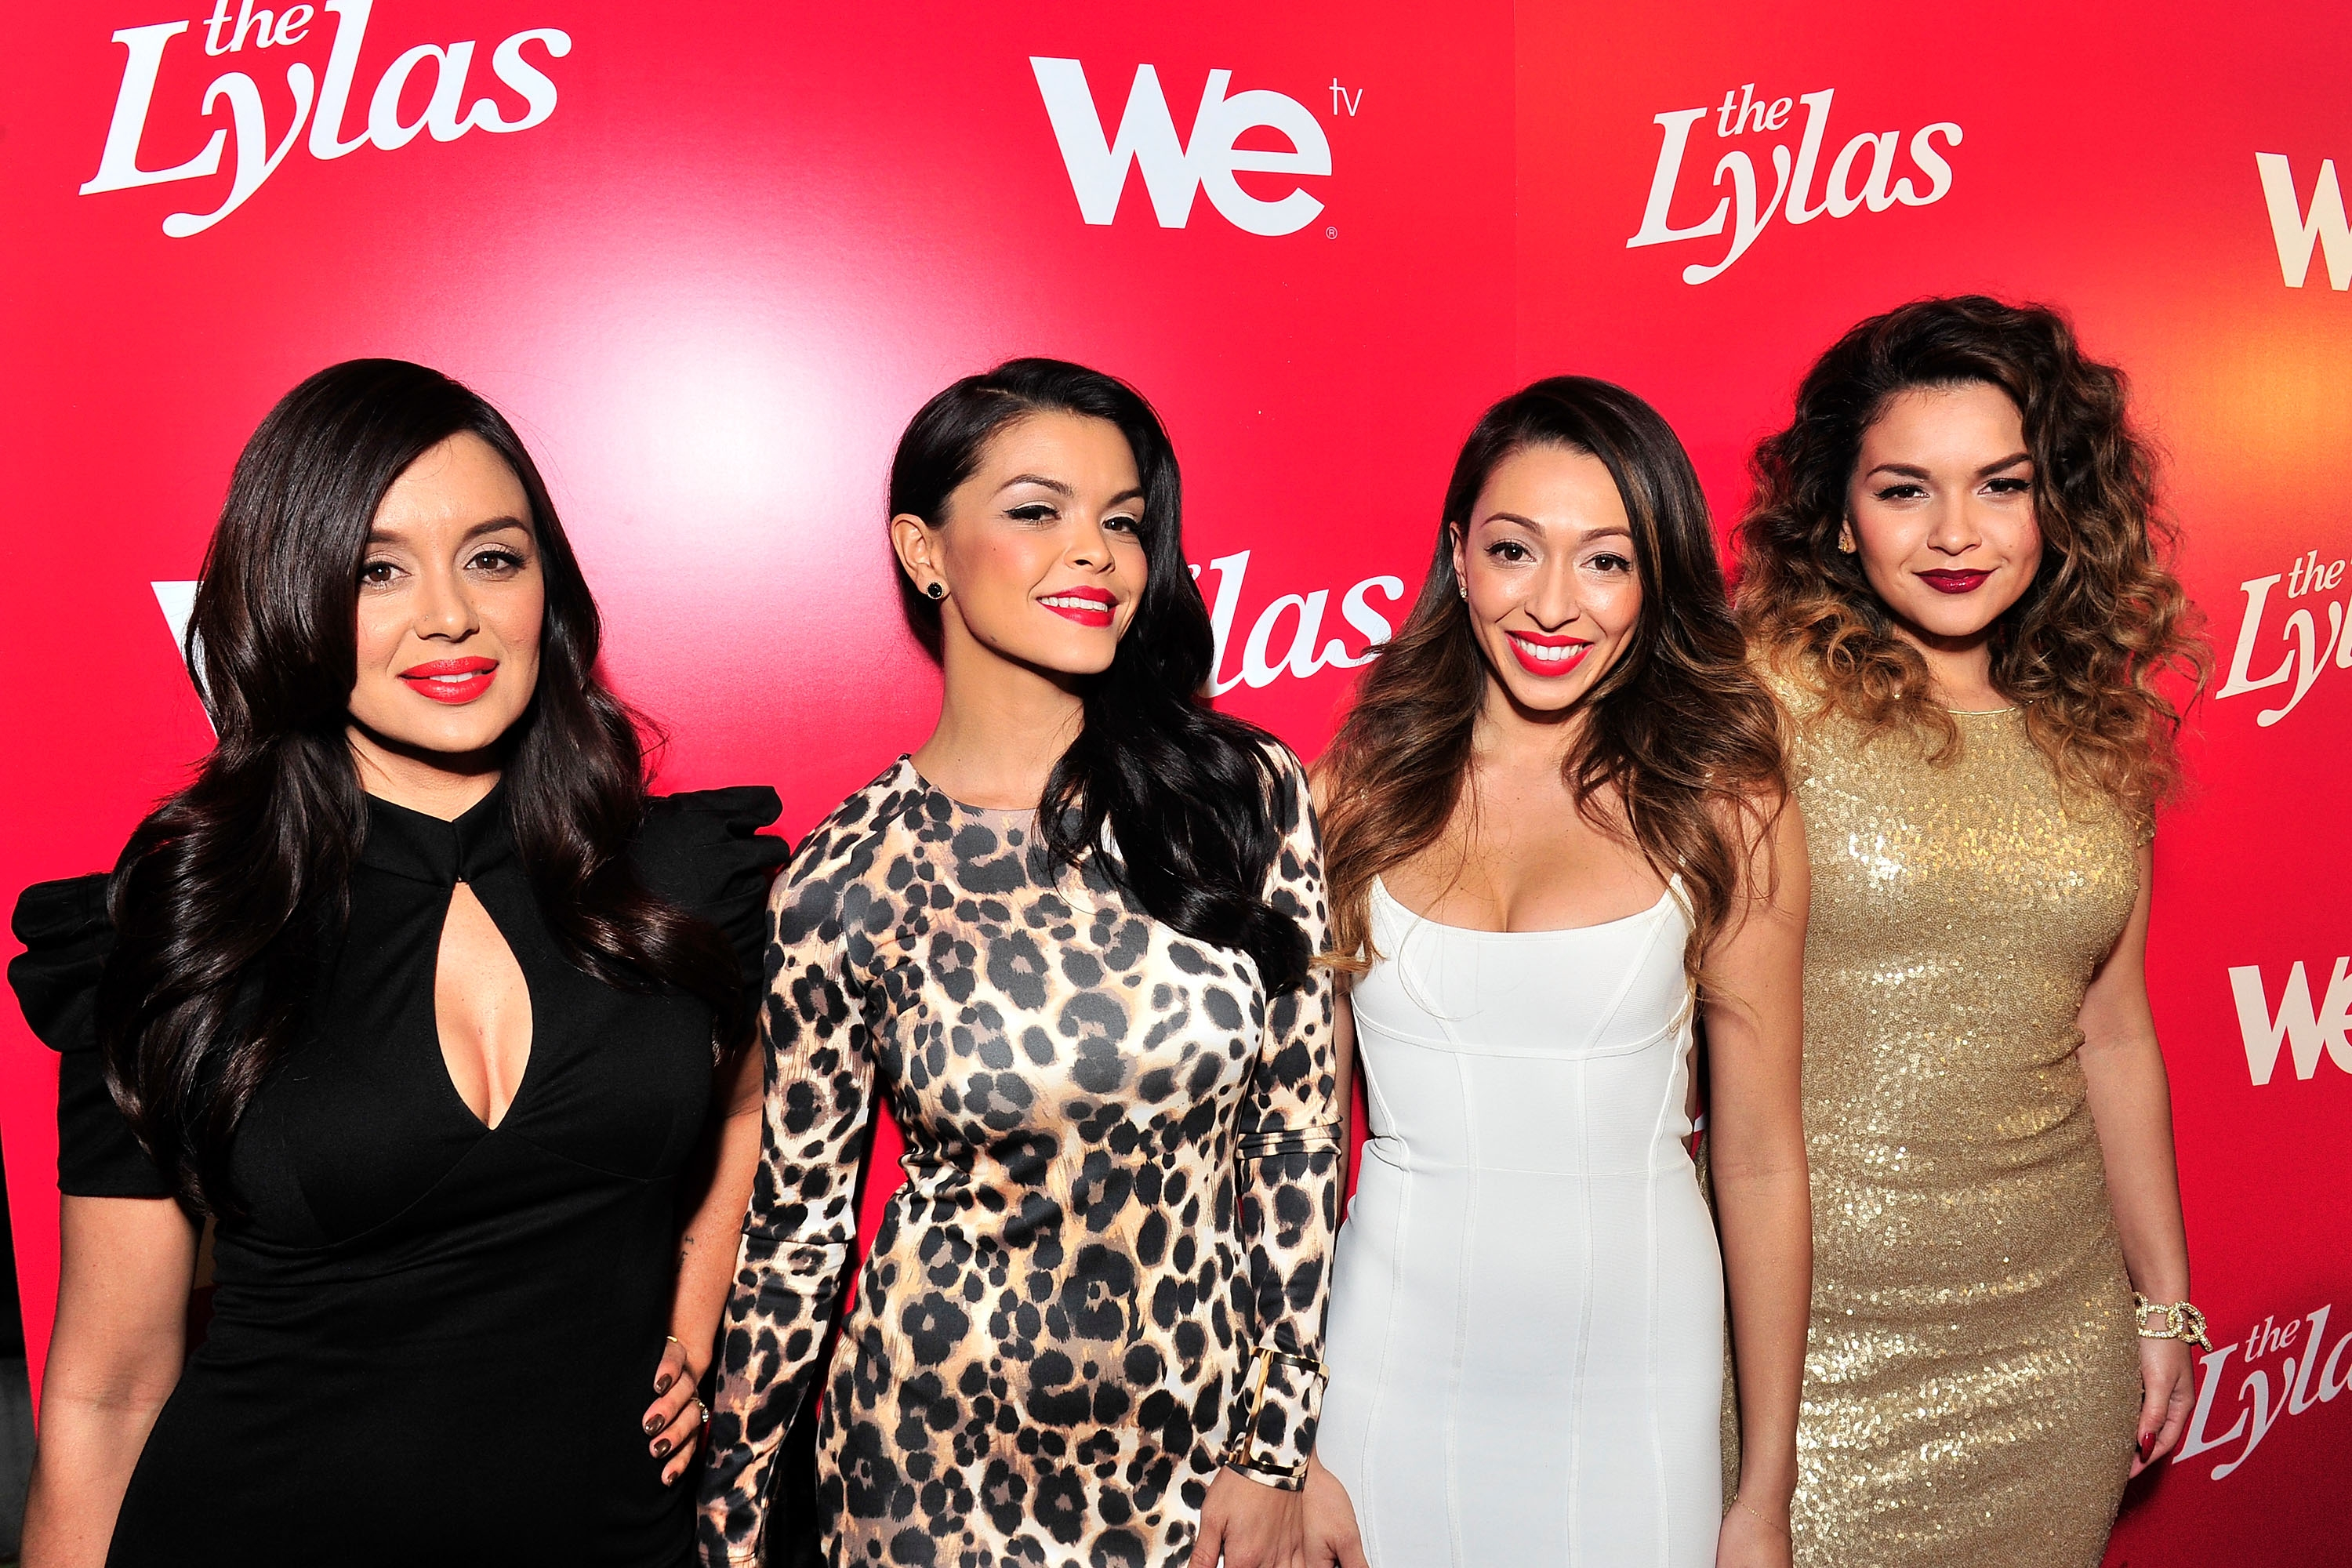 Jaime Bayot, Tiara Hernandez, Presley Hernandez and Tahiti Hernandez of the LYLAS at WE tv's Celebration for The Premiere Of  The LYLAS at the Warwick in Hollywood Nov. 7. (Jerod Harris/WireImage)